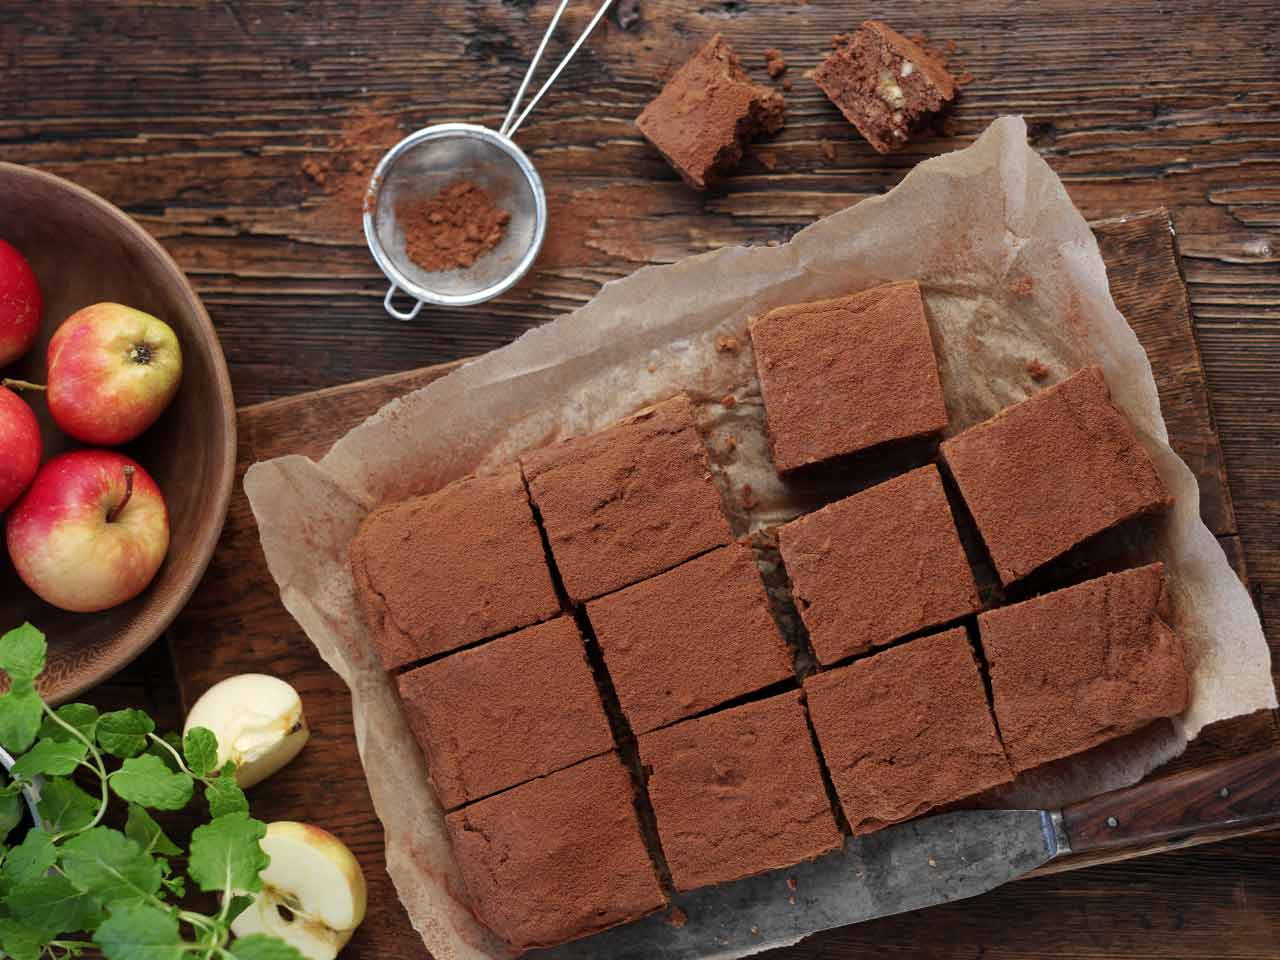 Chocolate and butter bean brownie